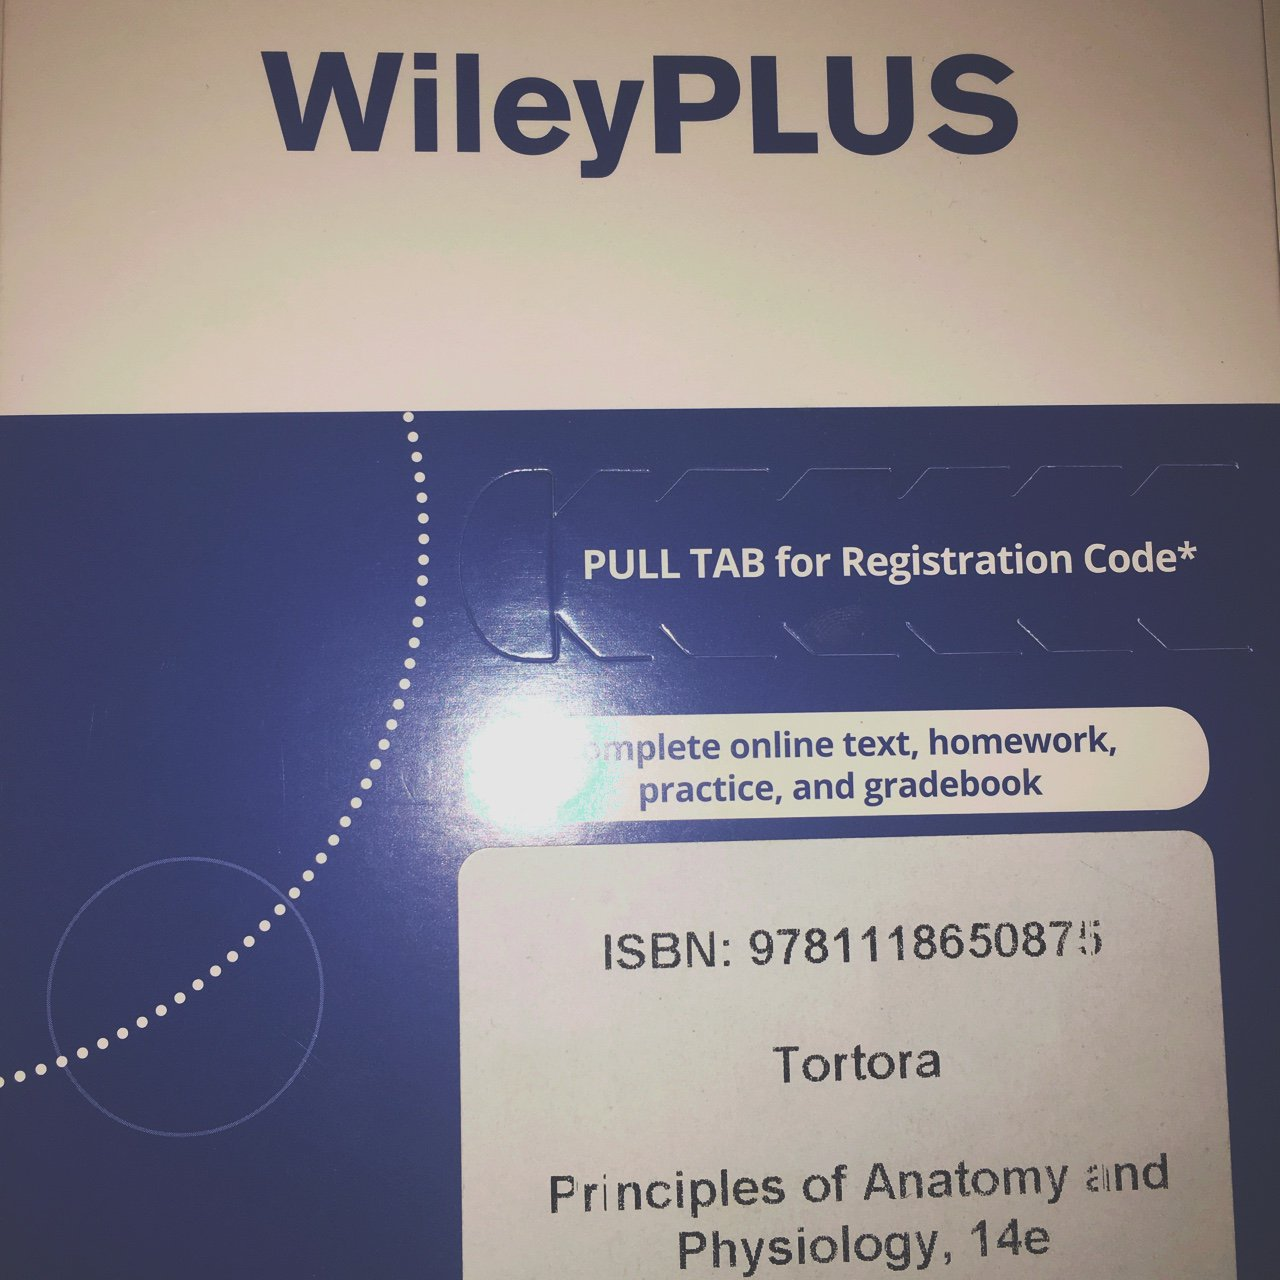 Wiley Plus online registration code for Principles of and - Depop